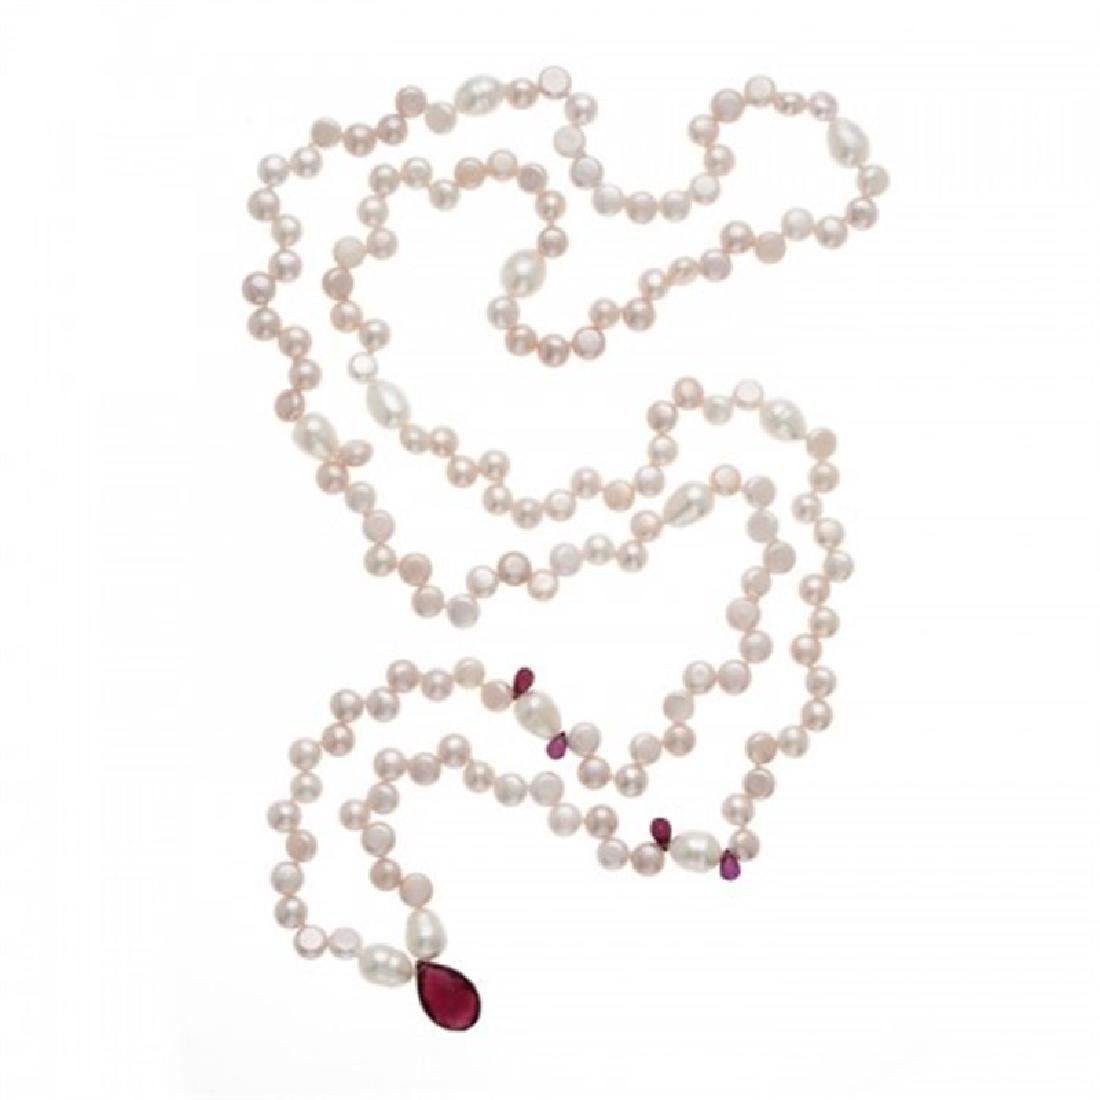 6.0-6.5mm Freshwater Pearl Necklace with Garnet